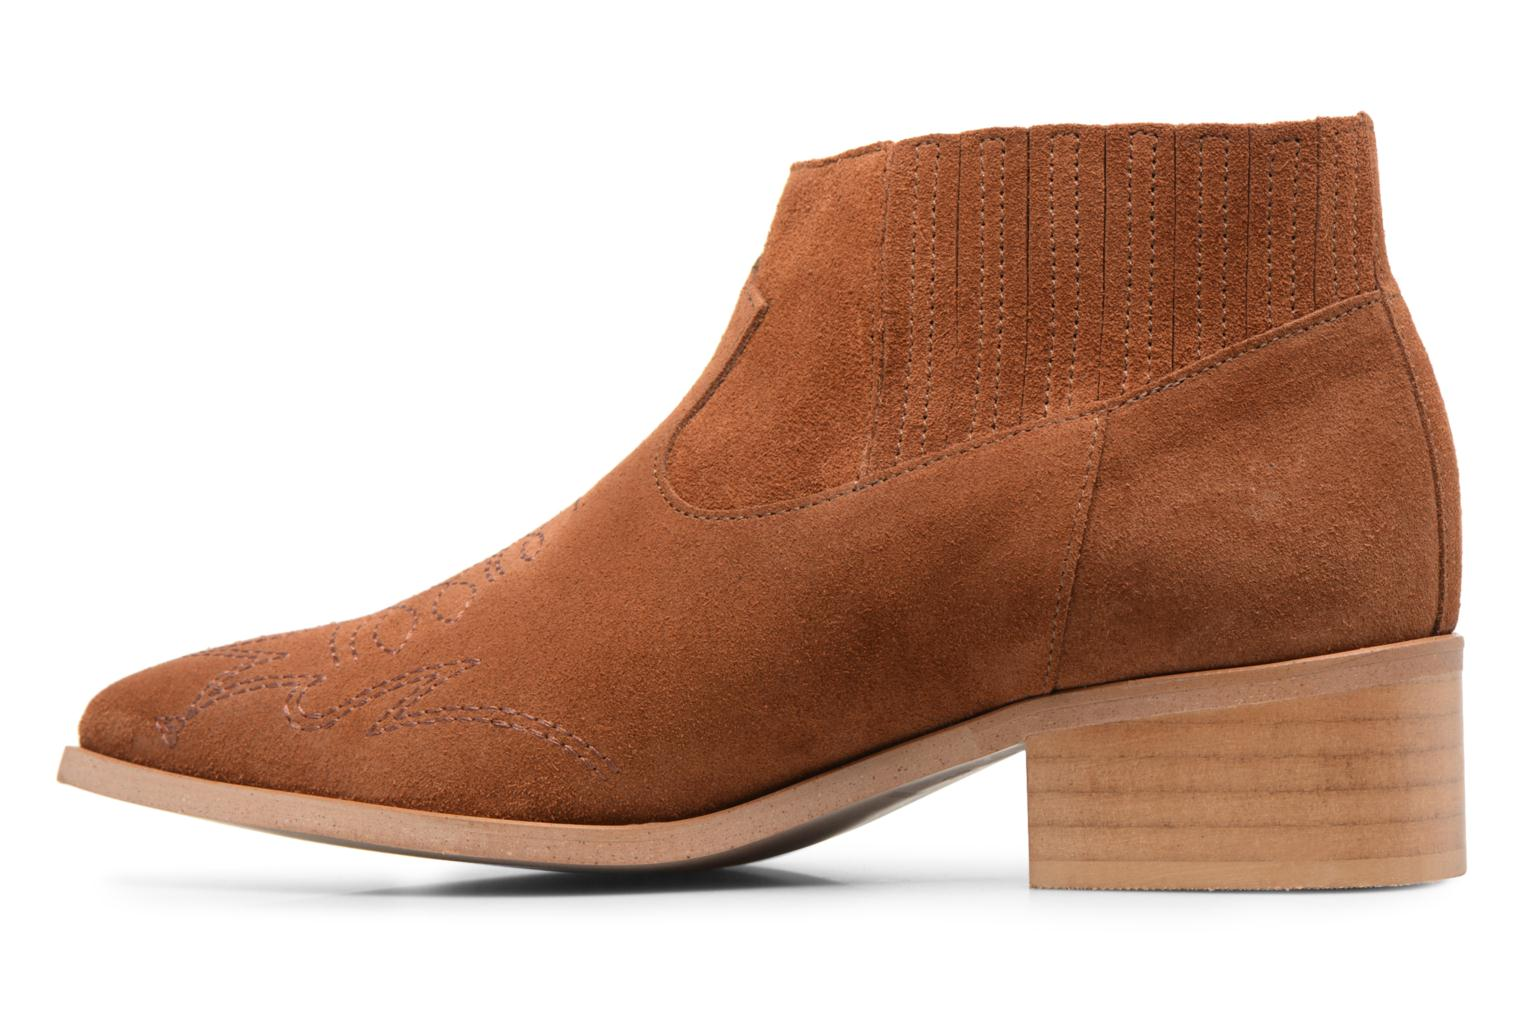 TOBIA LEATHER BOOT Cognac